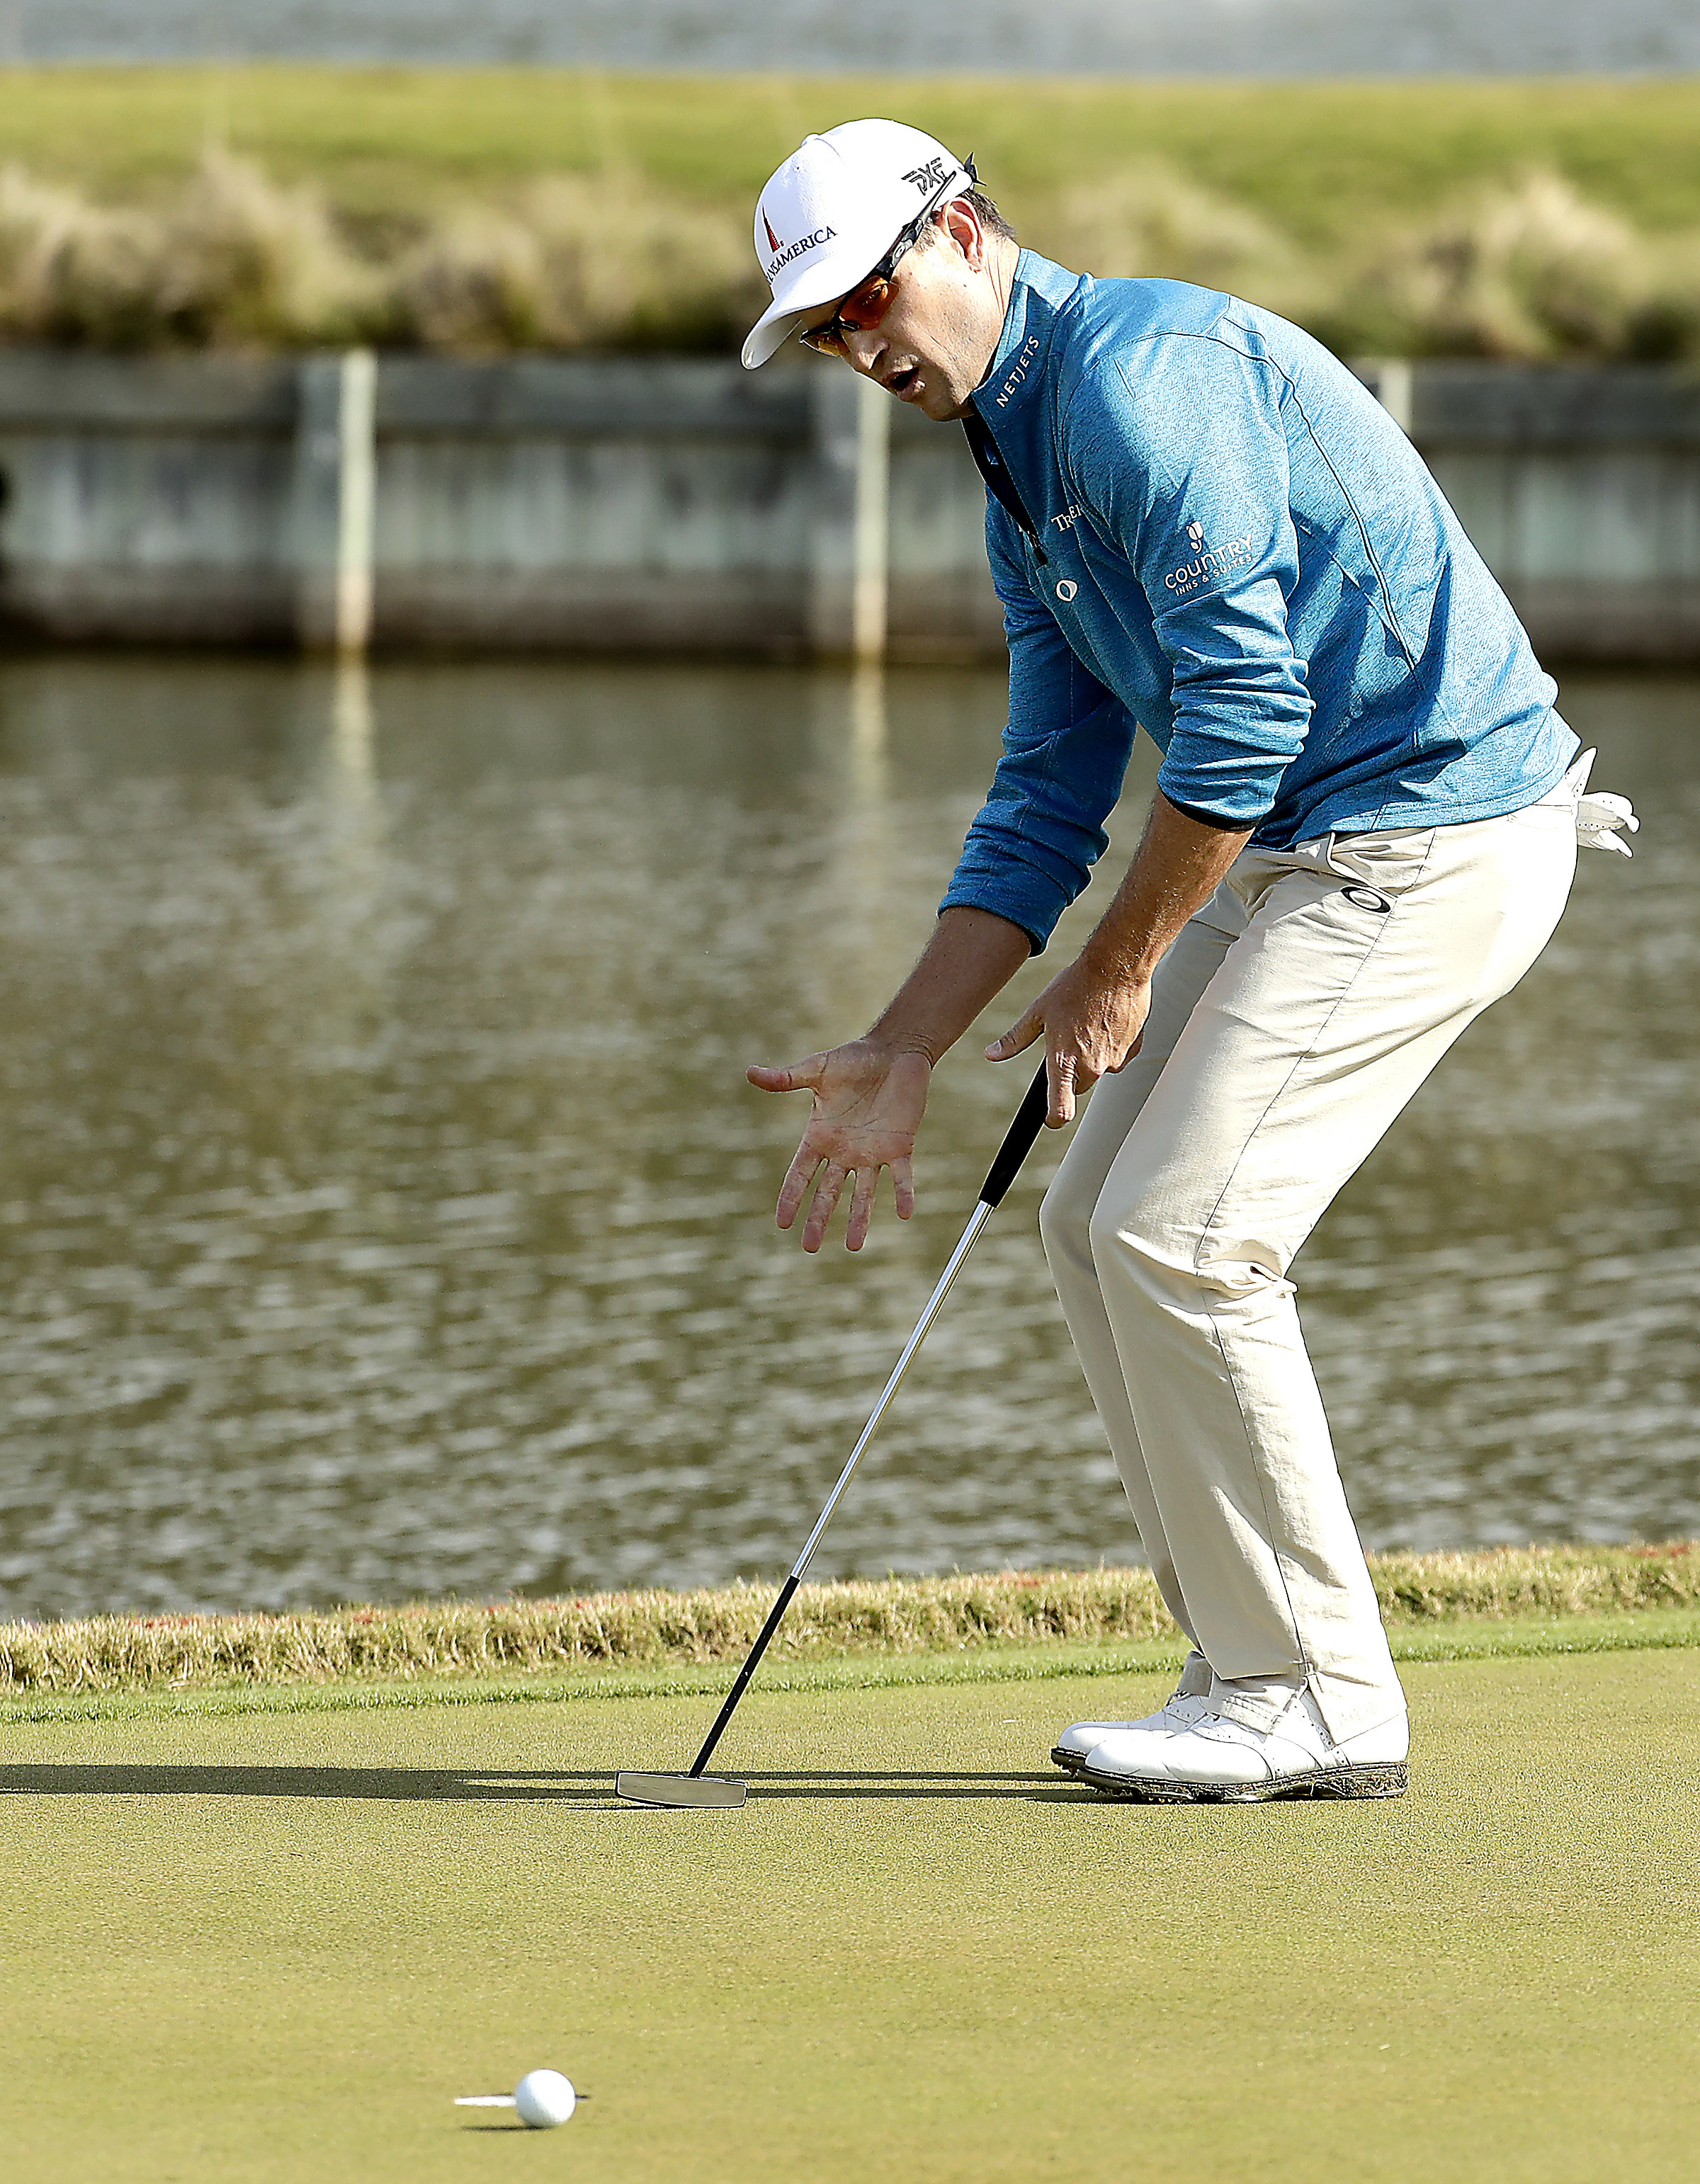 Zach Johnson reacts after missing a putt on the 13th green during the round of 16 play against Rory McIlroy at the Dell Match Play Championship golf tournament at Austin County Club Saturday, March 26, 2016, in Austin, Texas. (AP Photo/Charlie Riedel)